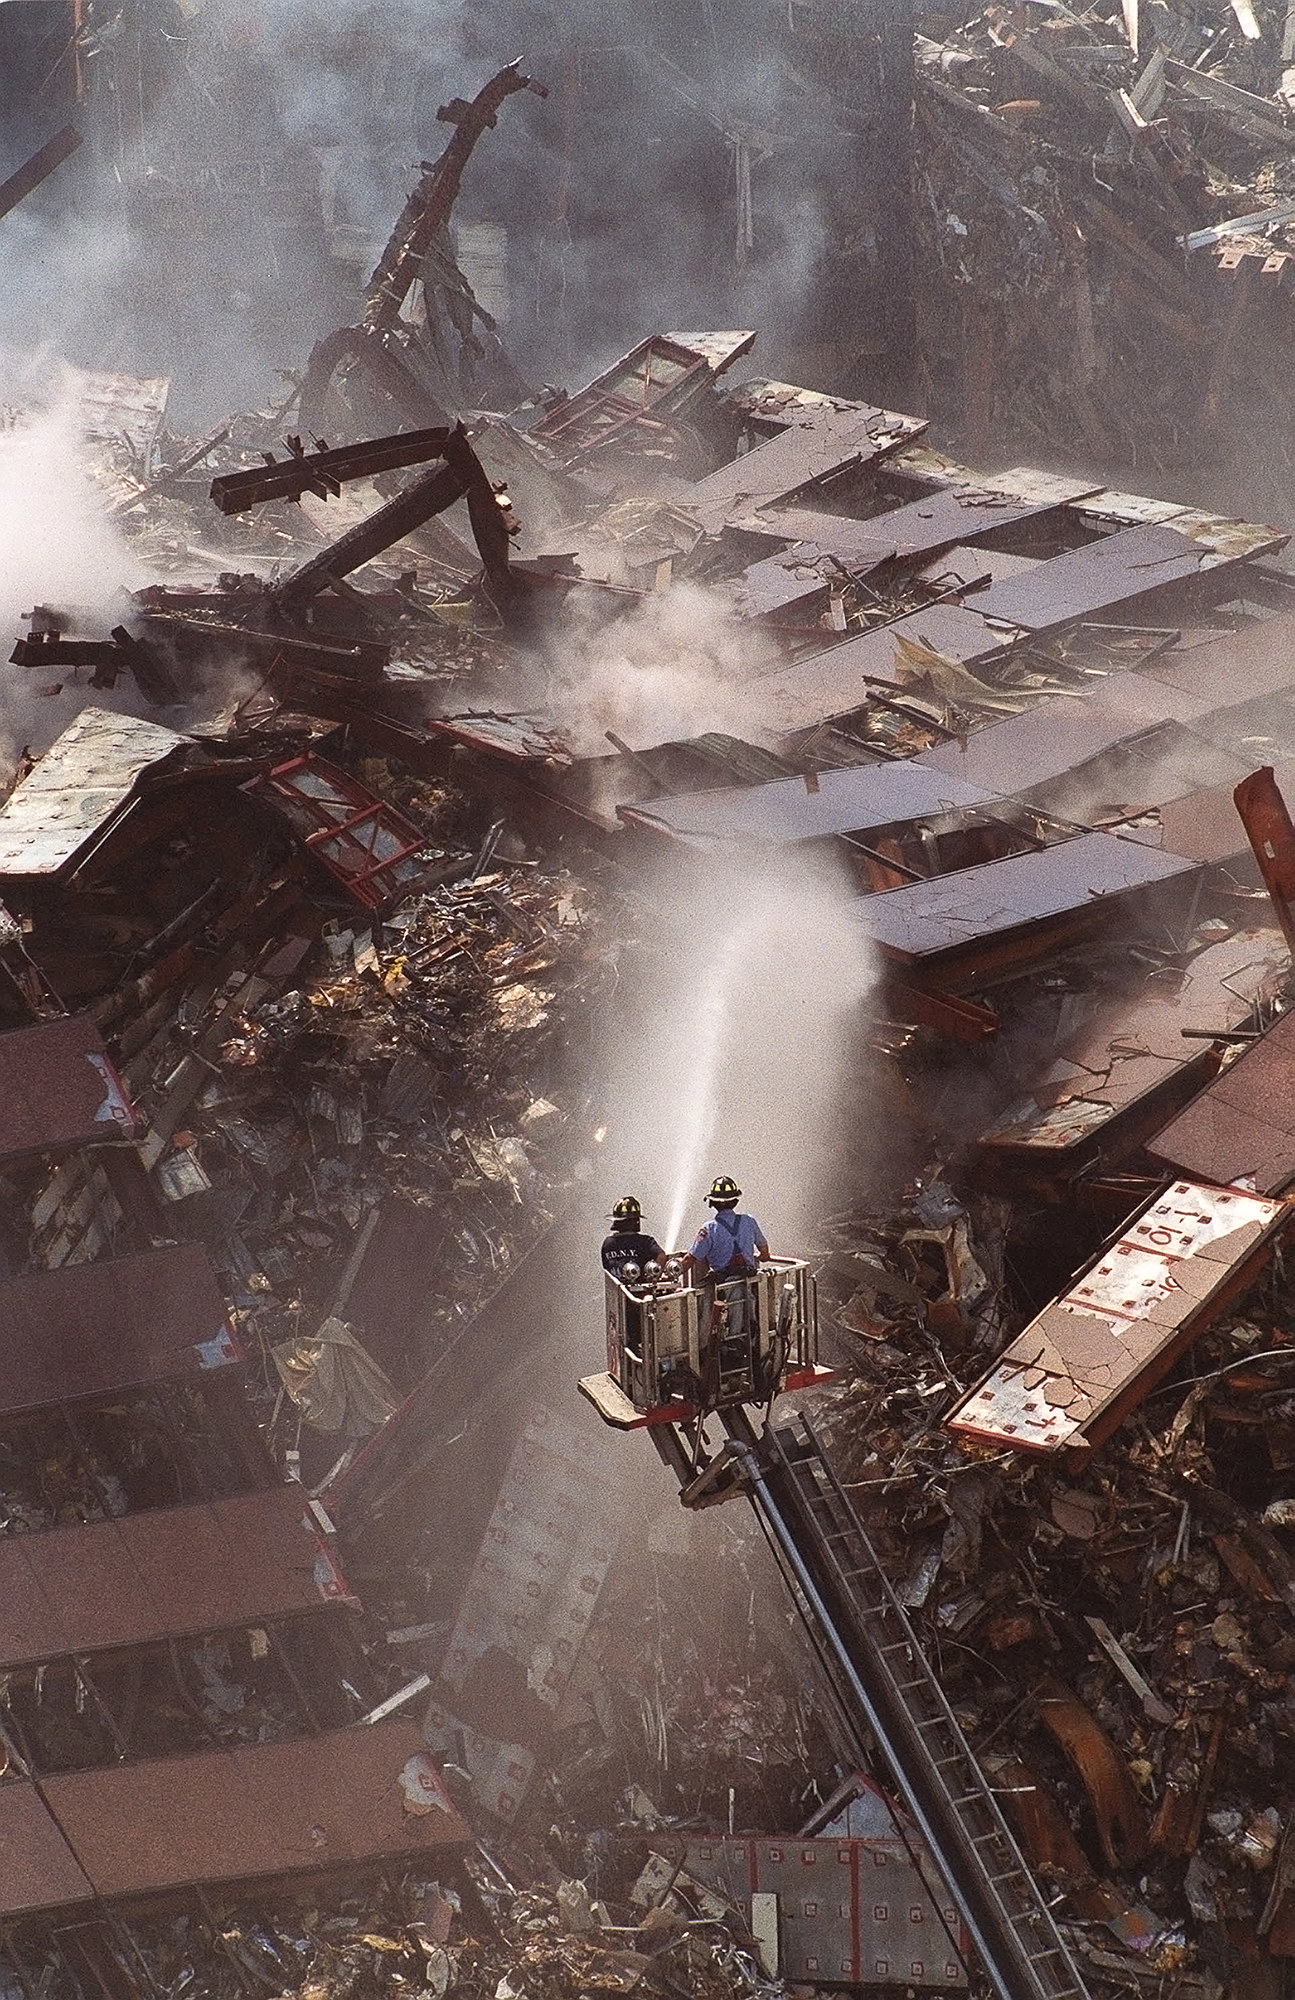 Two firefighters on a platform crane above a mountain of wreckage